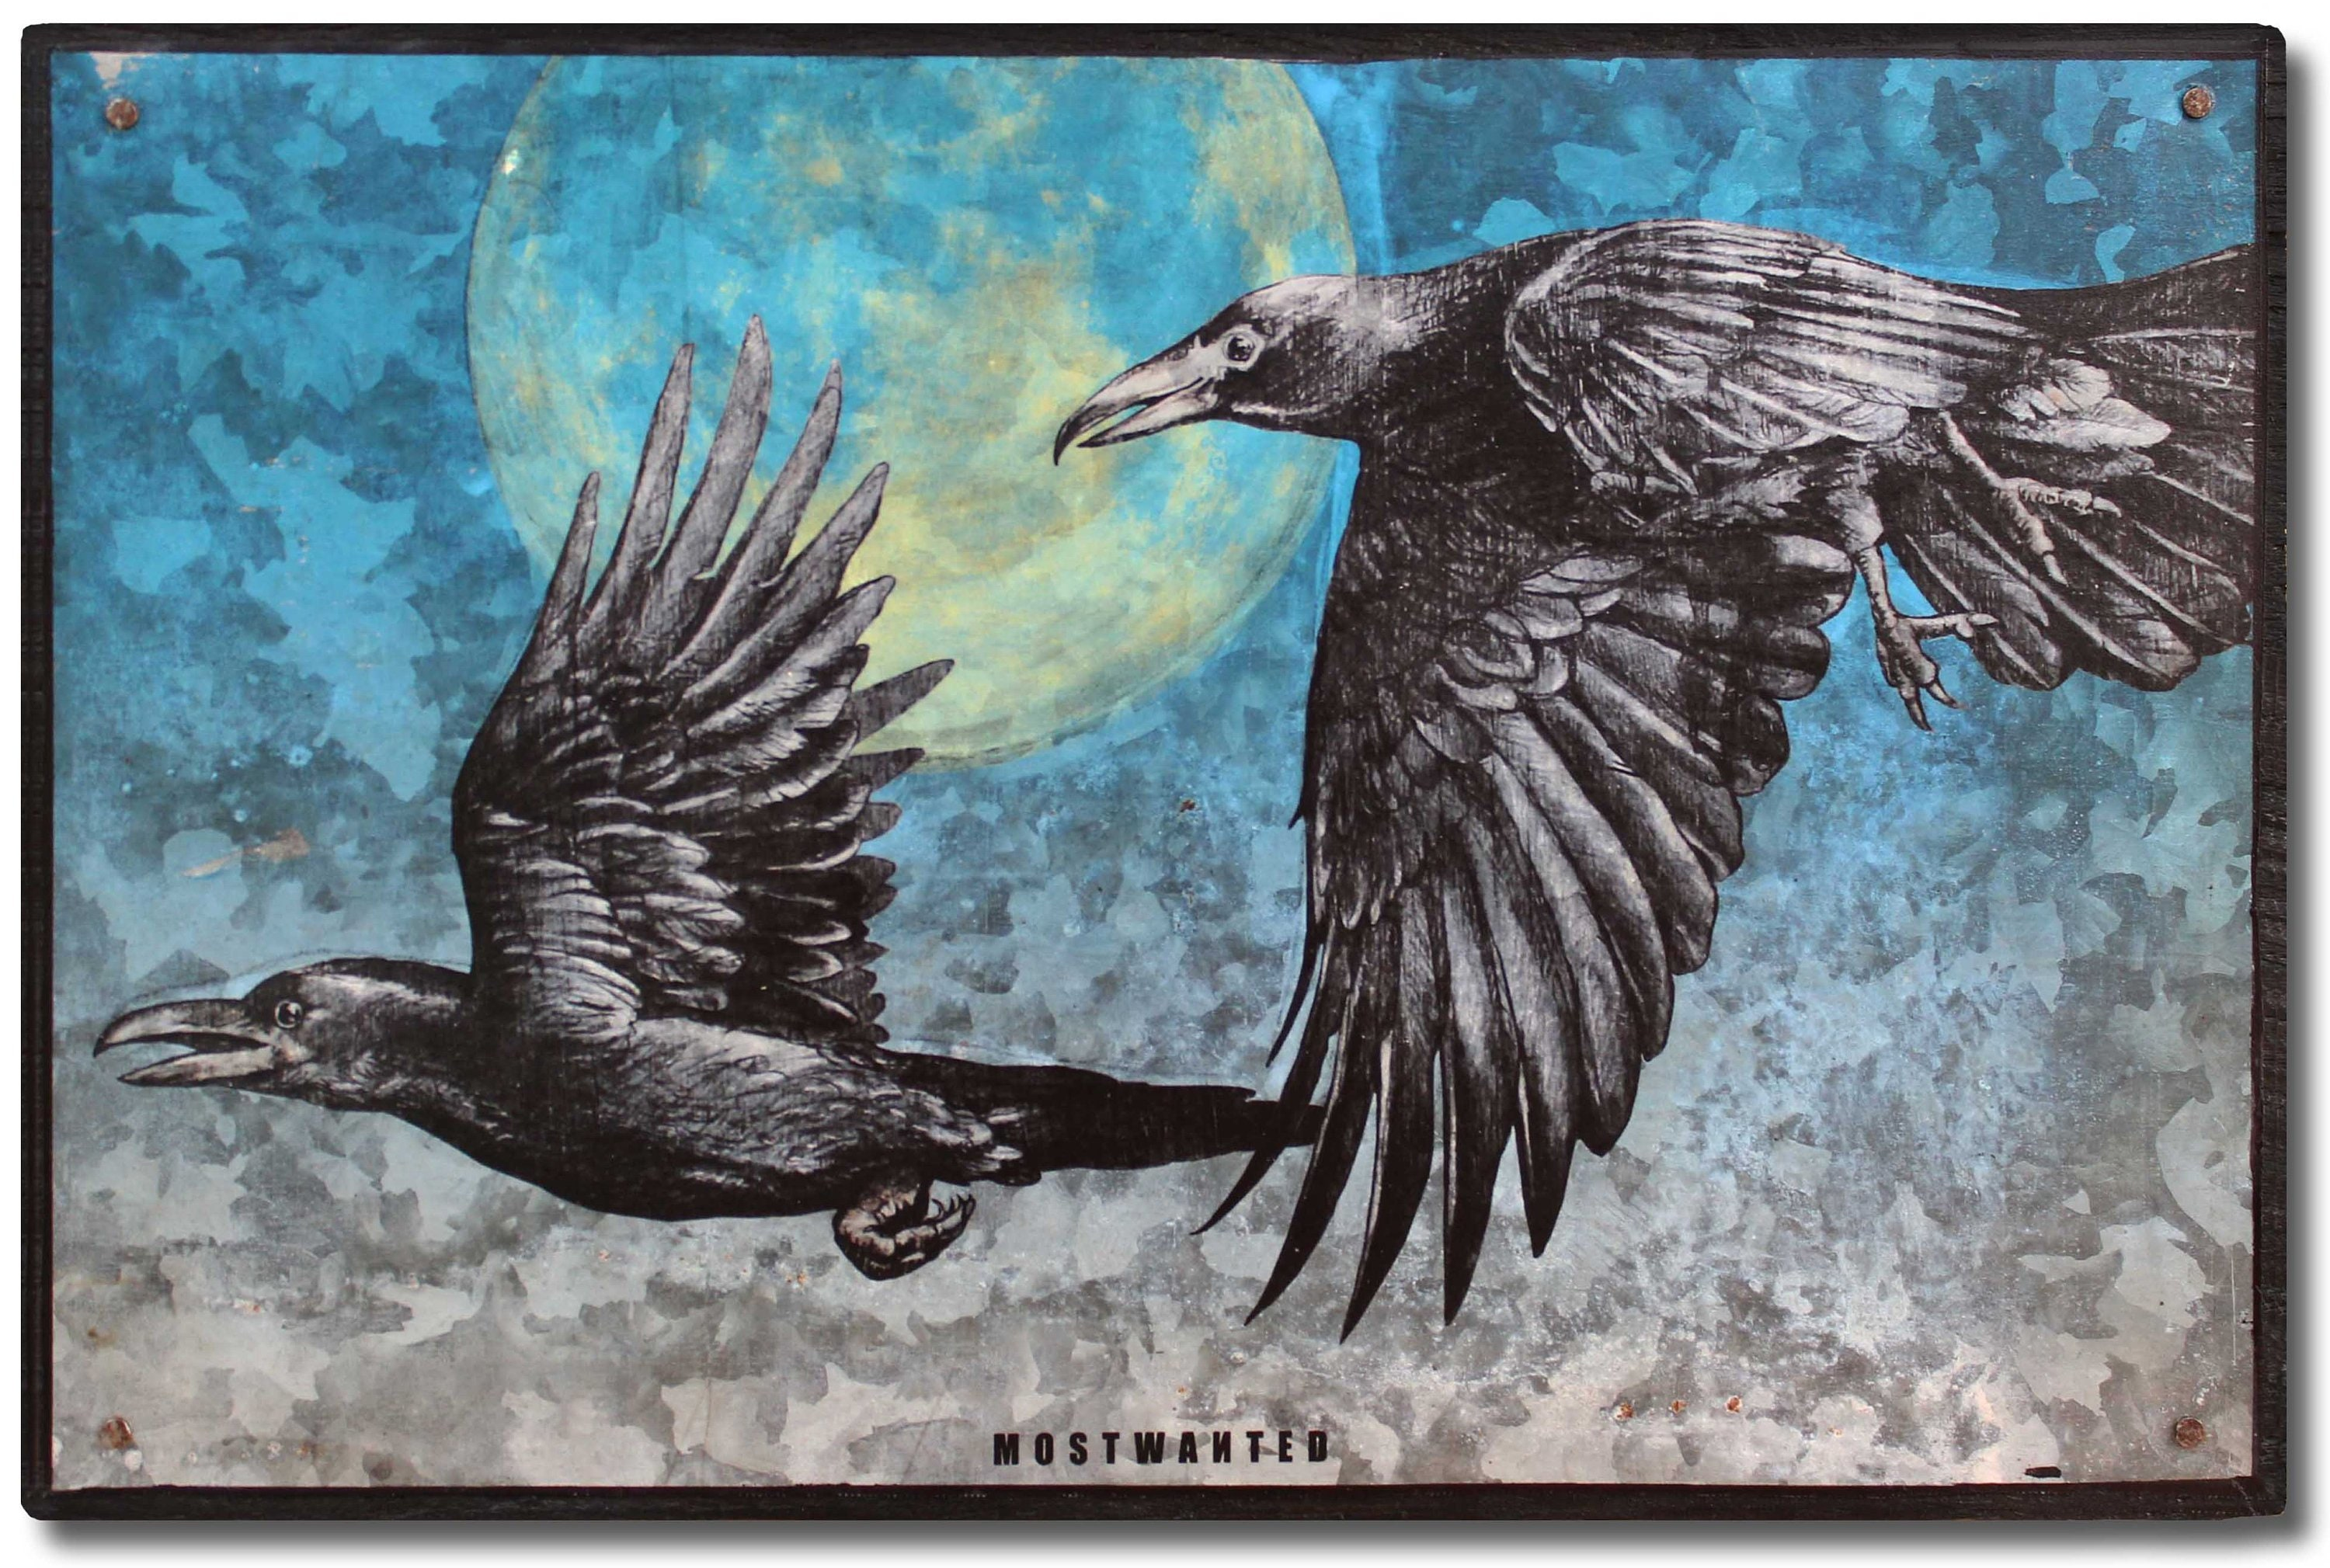 Night crows full moon colored pencil drawing artwork transfer on metal old barn tin 10 25x6 75 inches blue black